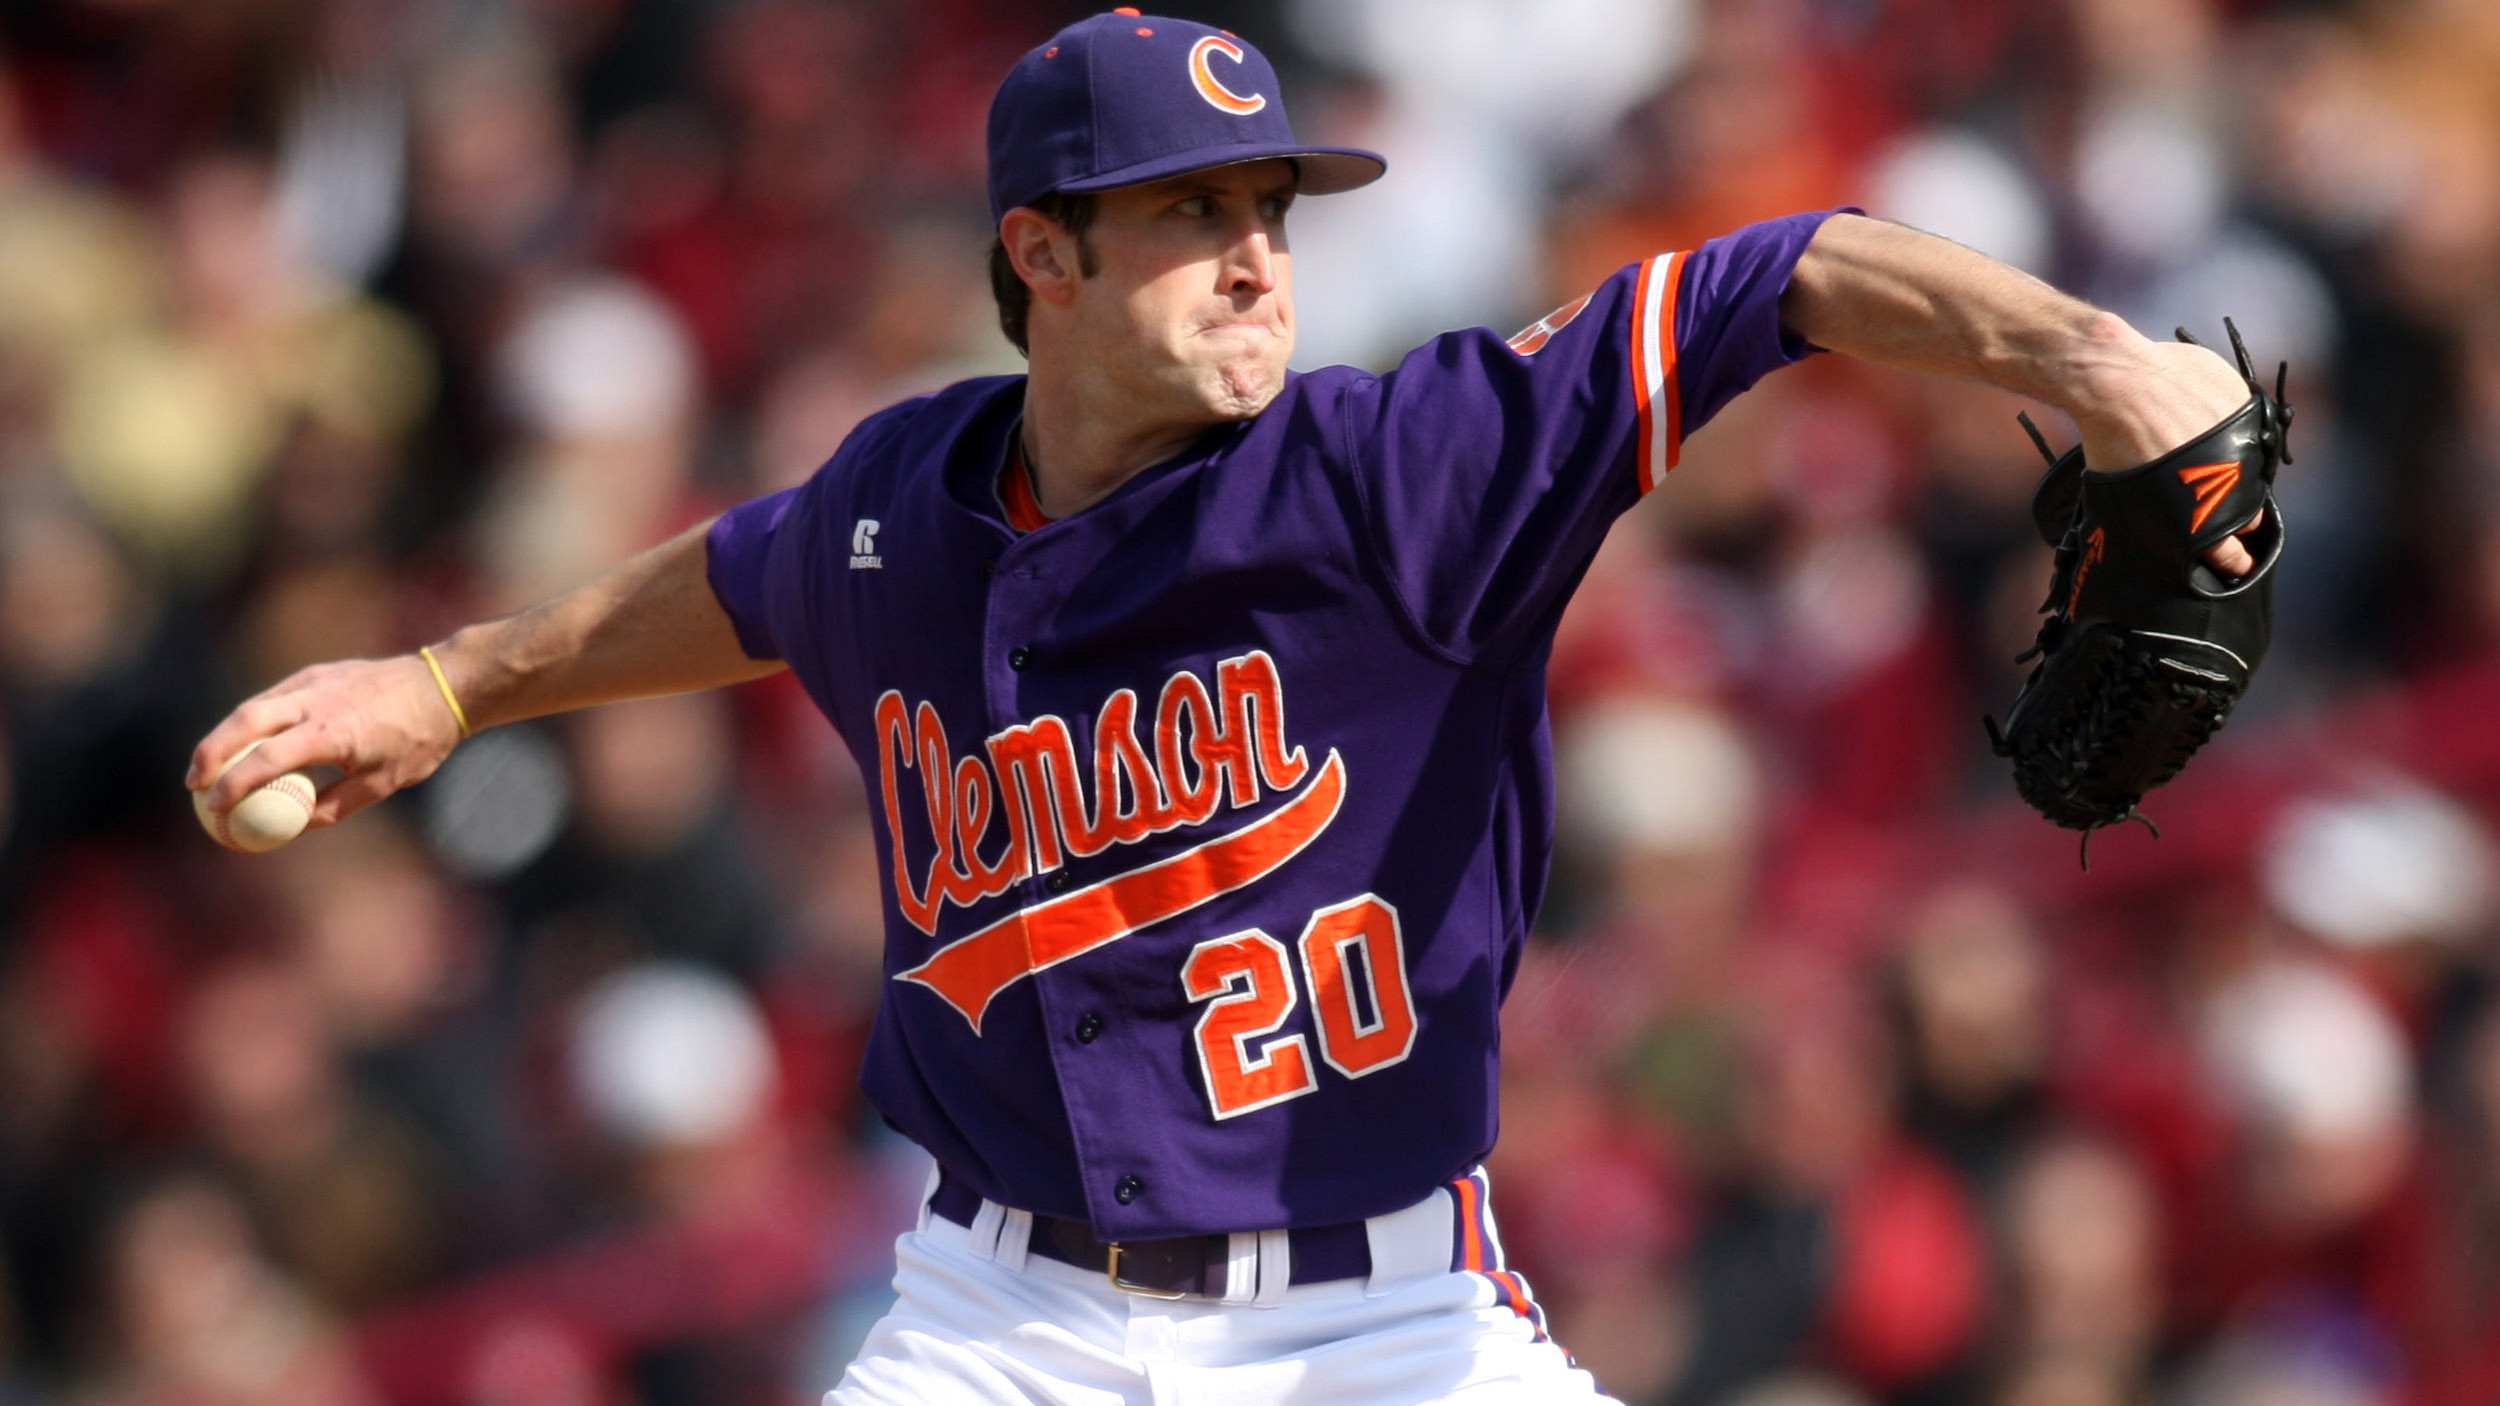 Tigers Outlast #1 North Carolina 5-4 in 11 Innings Monday Night